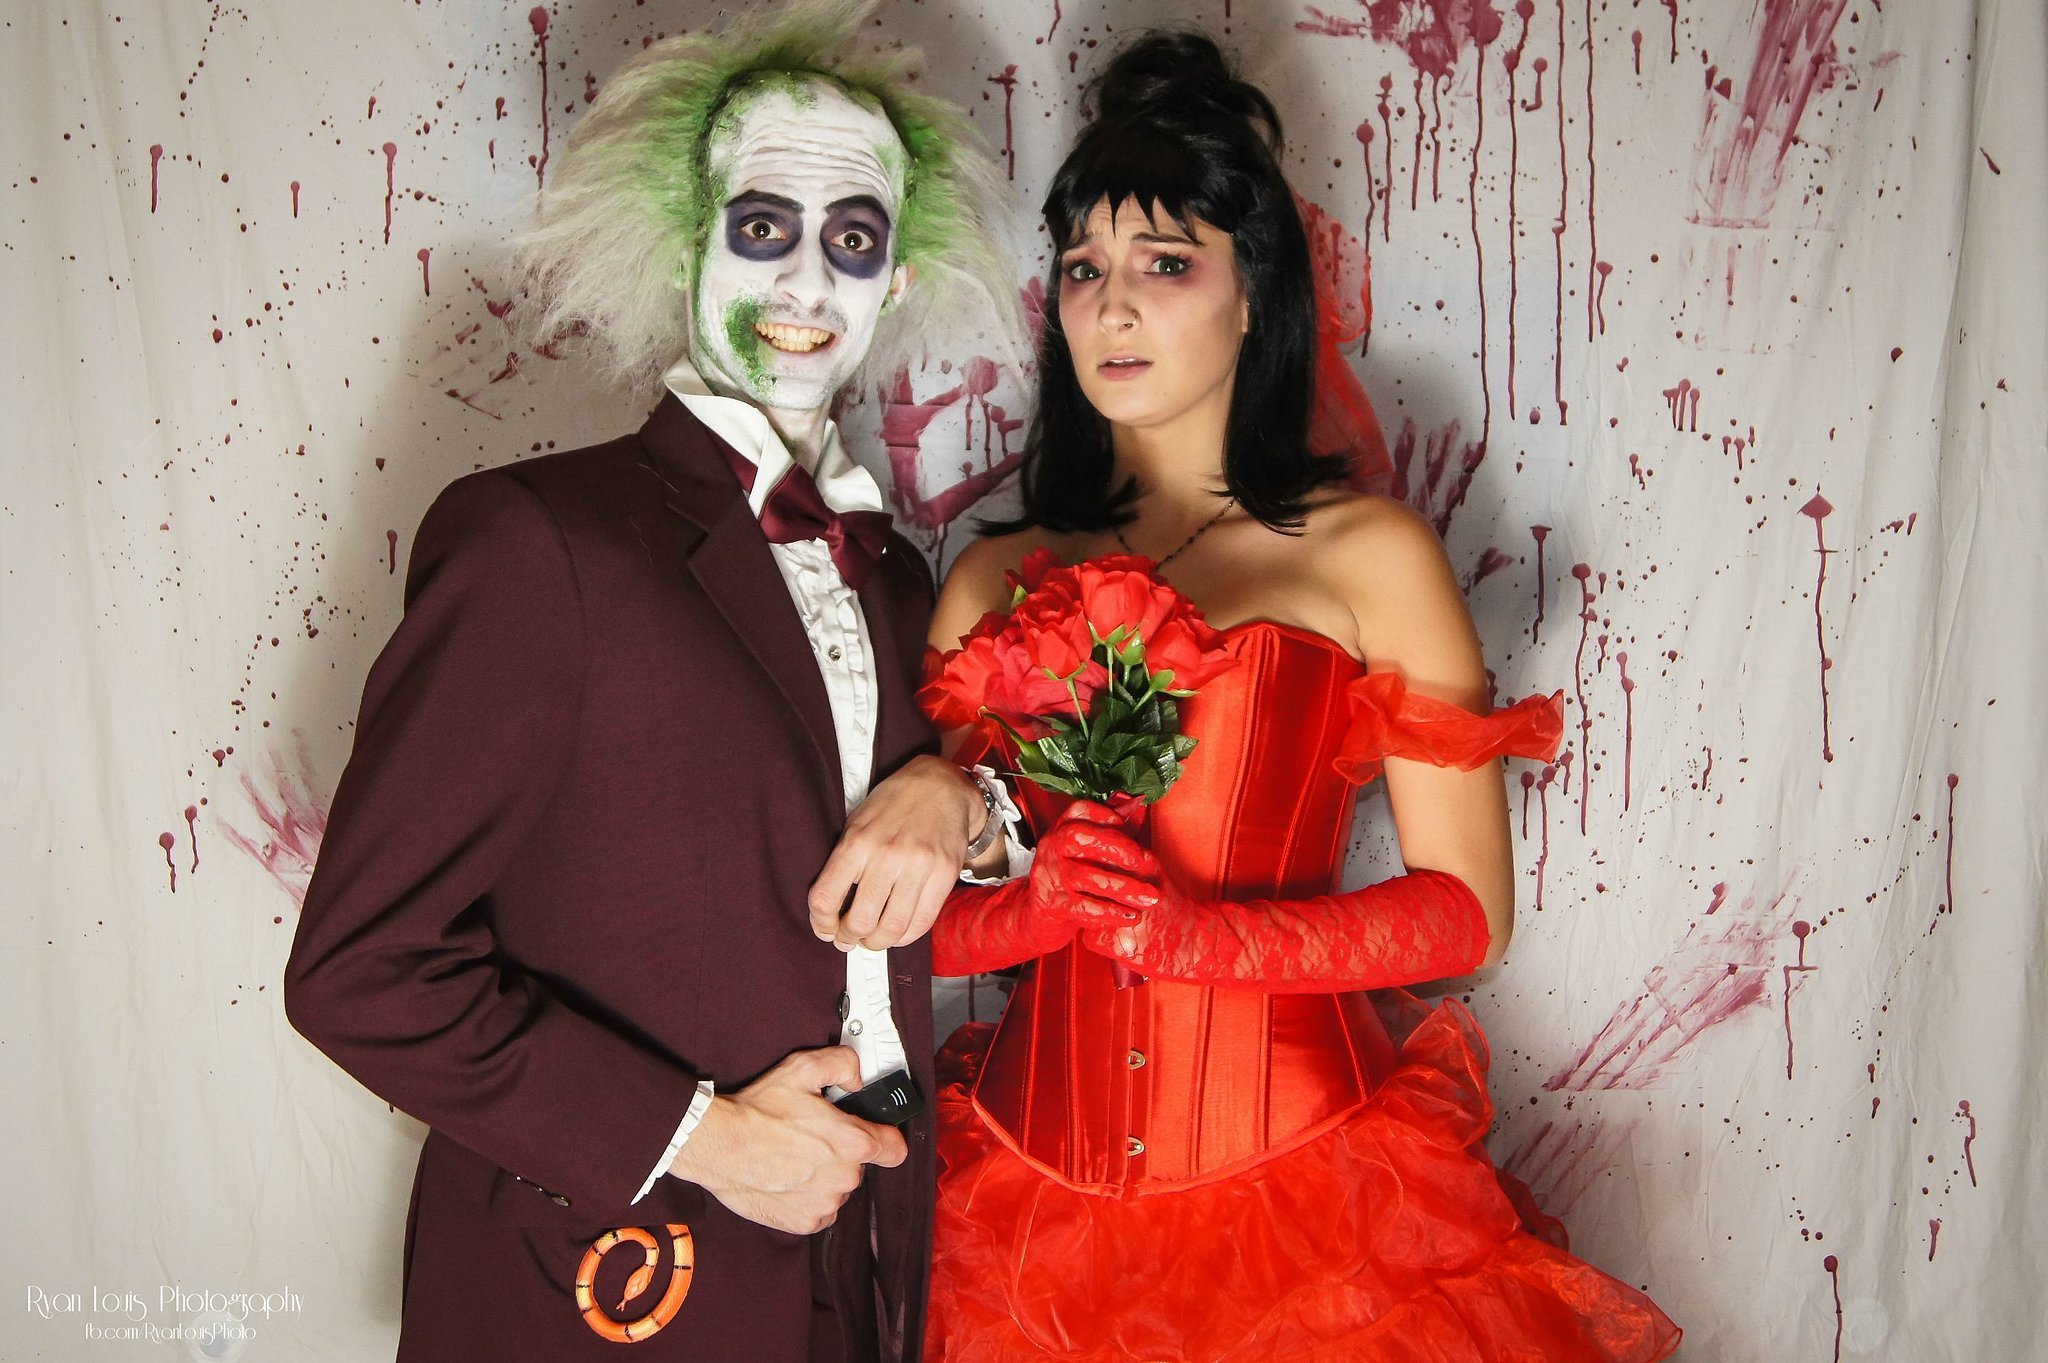 Beetlejuice and Lydia  Get Early Halloween Inspiration From These Real Pop Culture Costumes